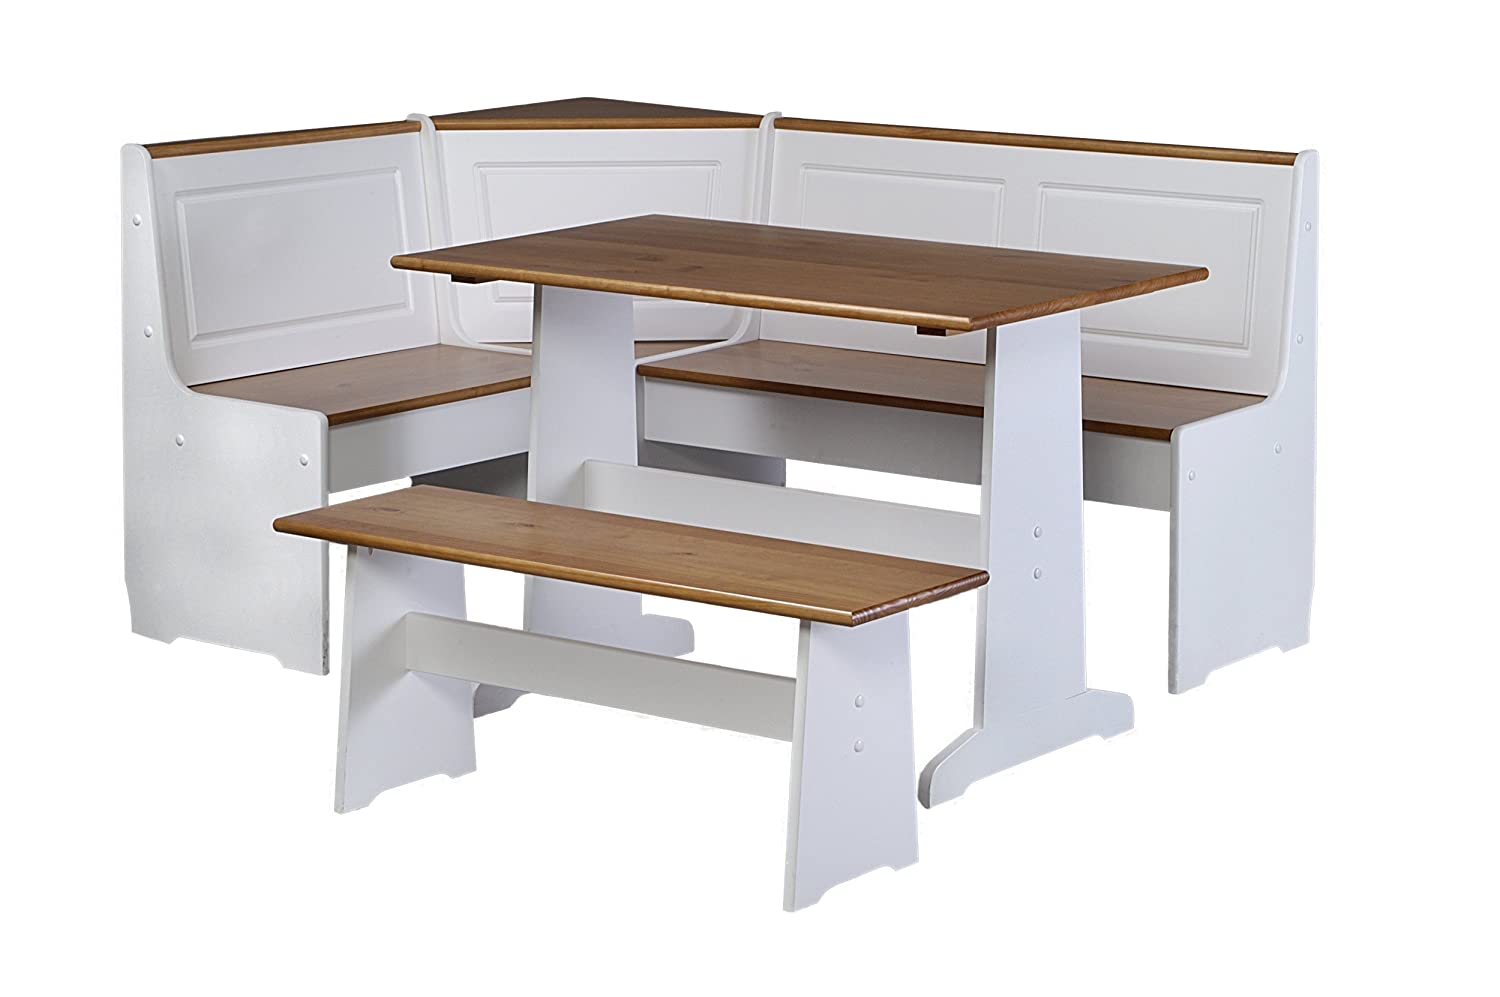 Kitchen table with bench Dining table and bench set